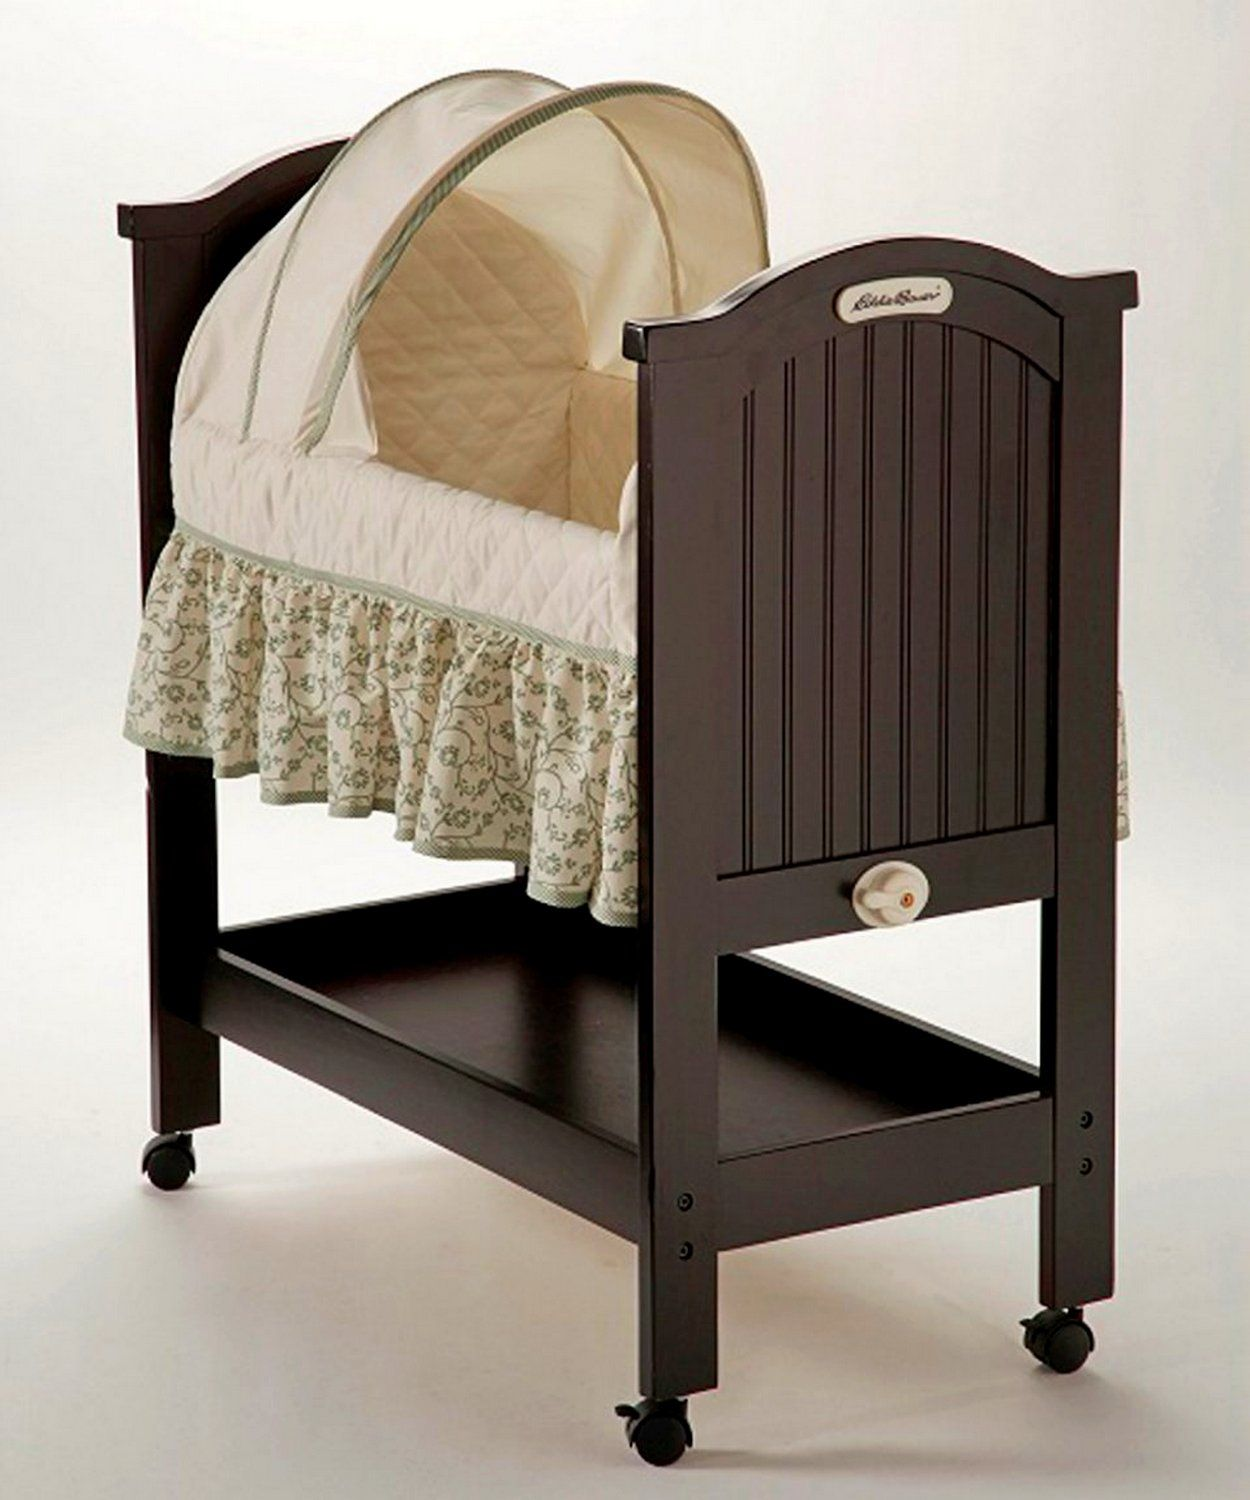 Eddie Bauer Rocking Wood Bassinet  Wooden Bassinet